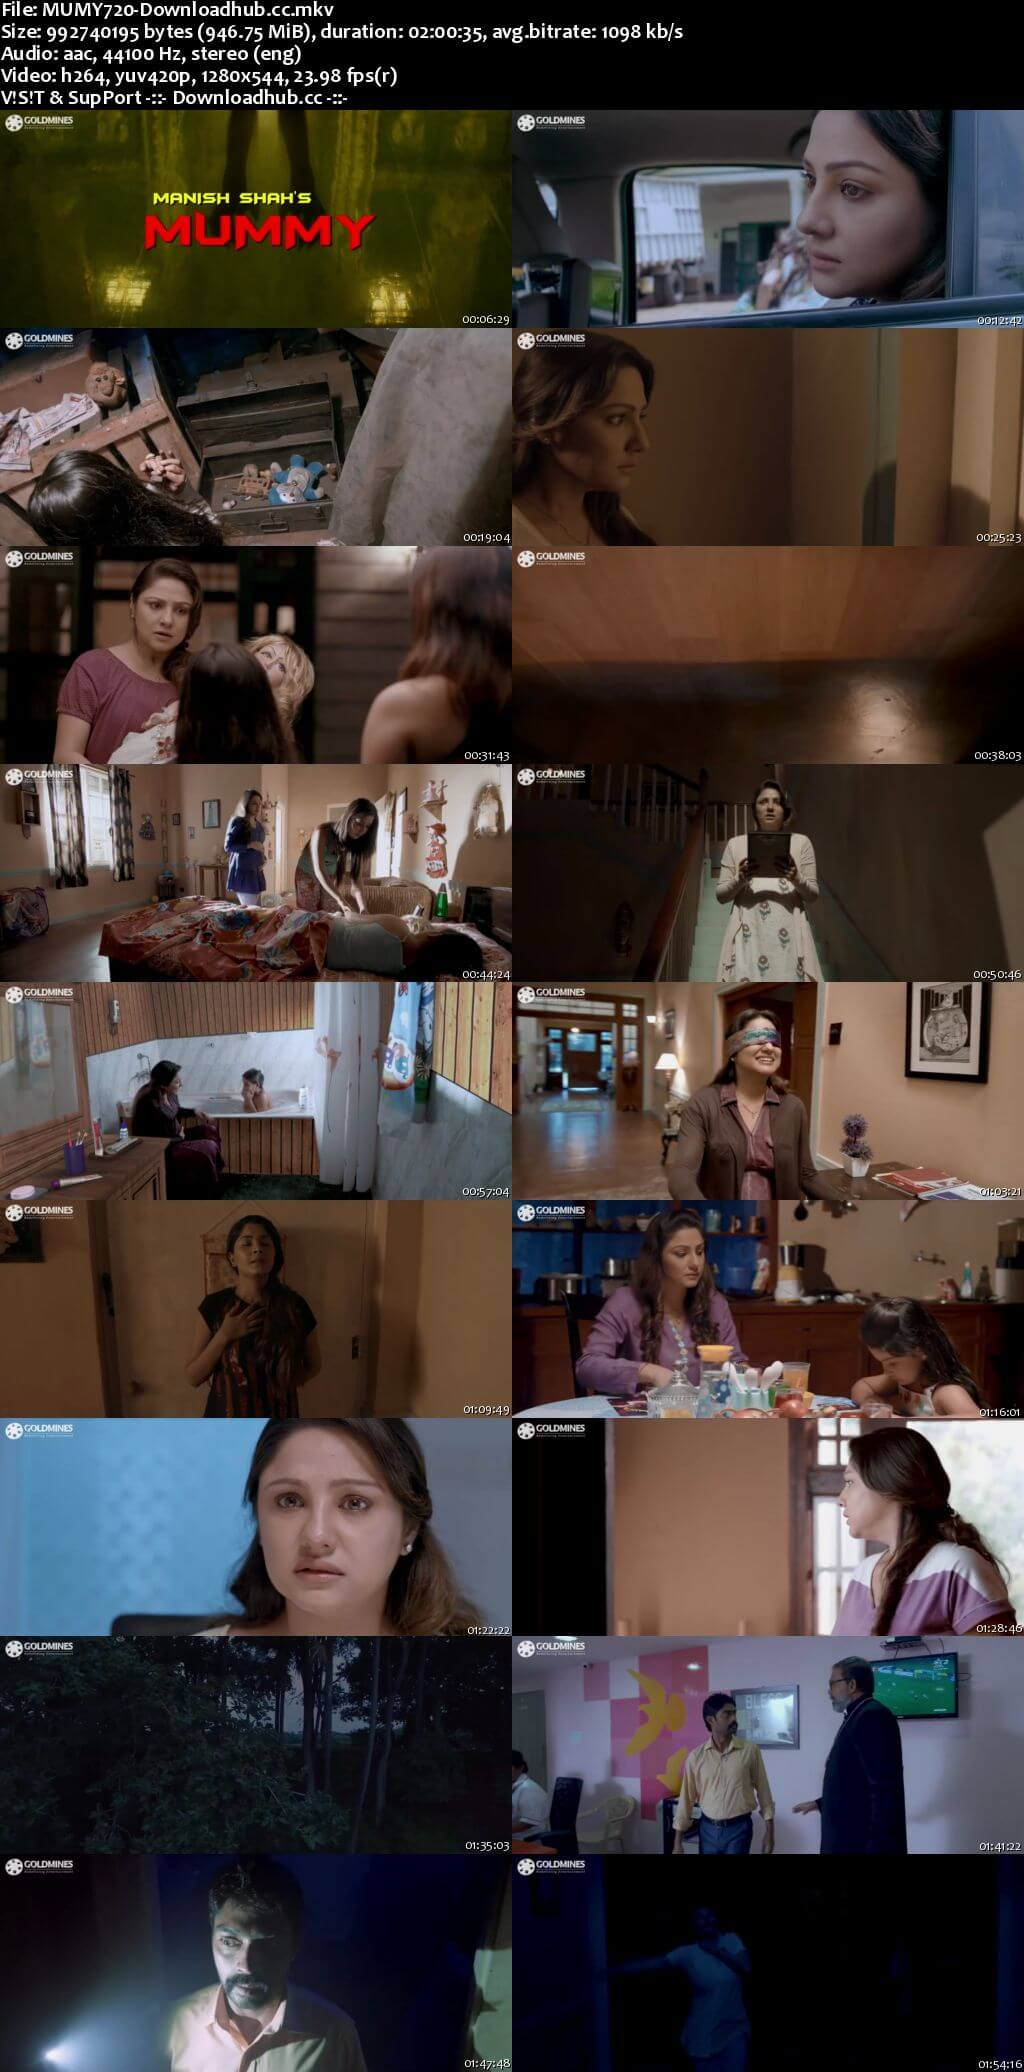 Mummy 2018 Hindi Dubbed 720p HDRip